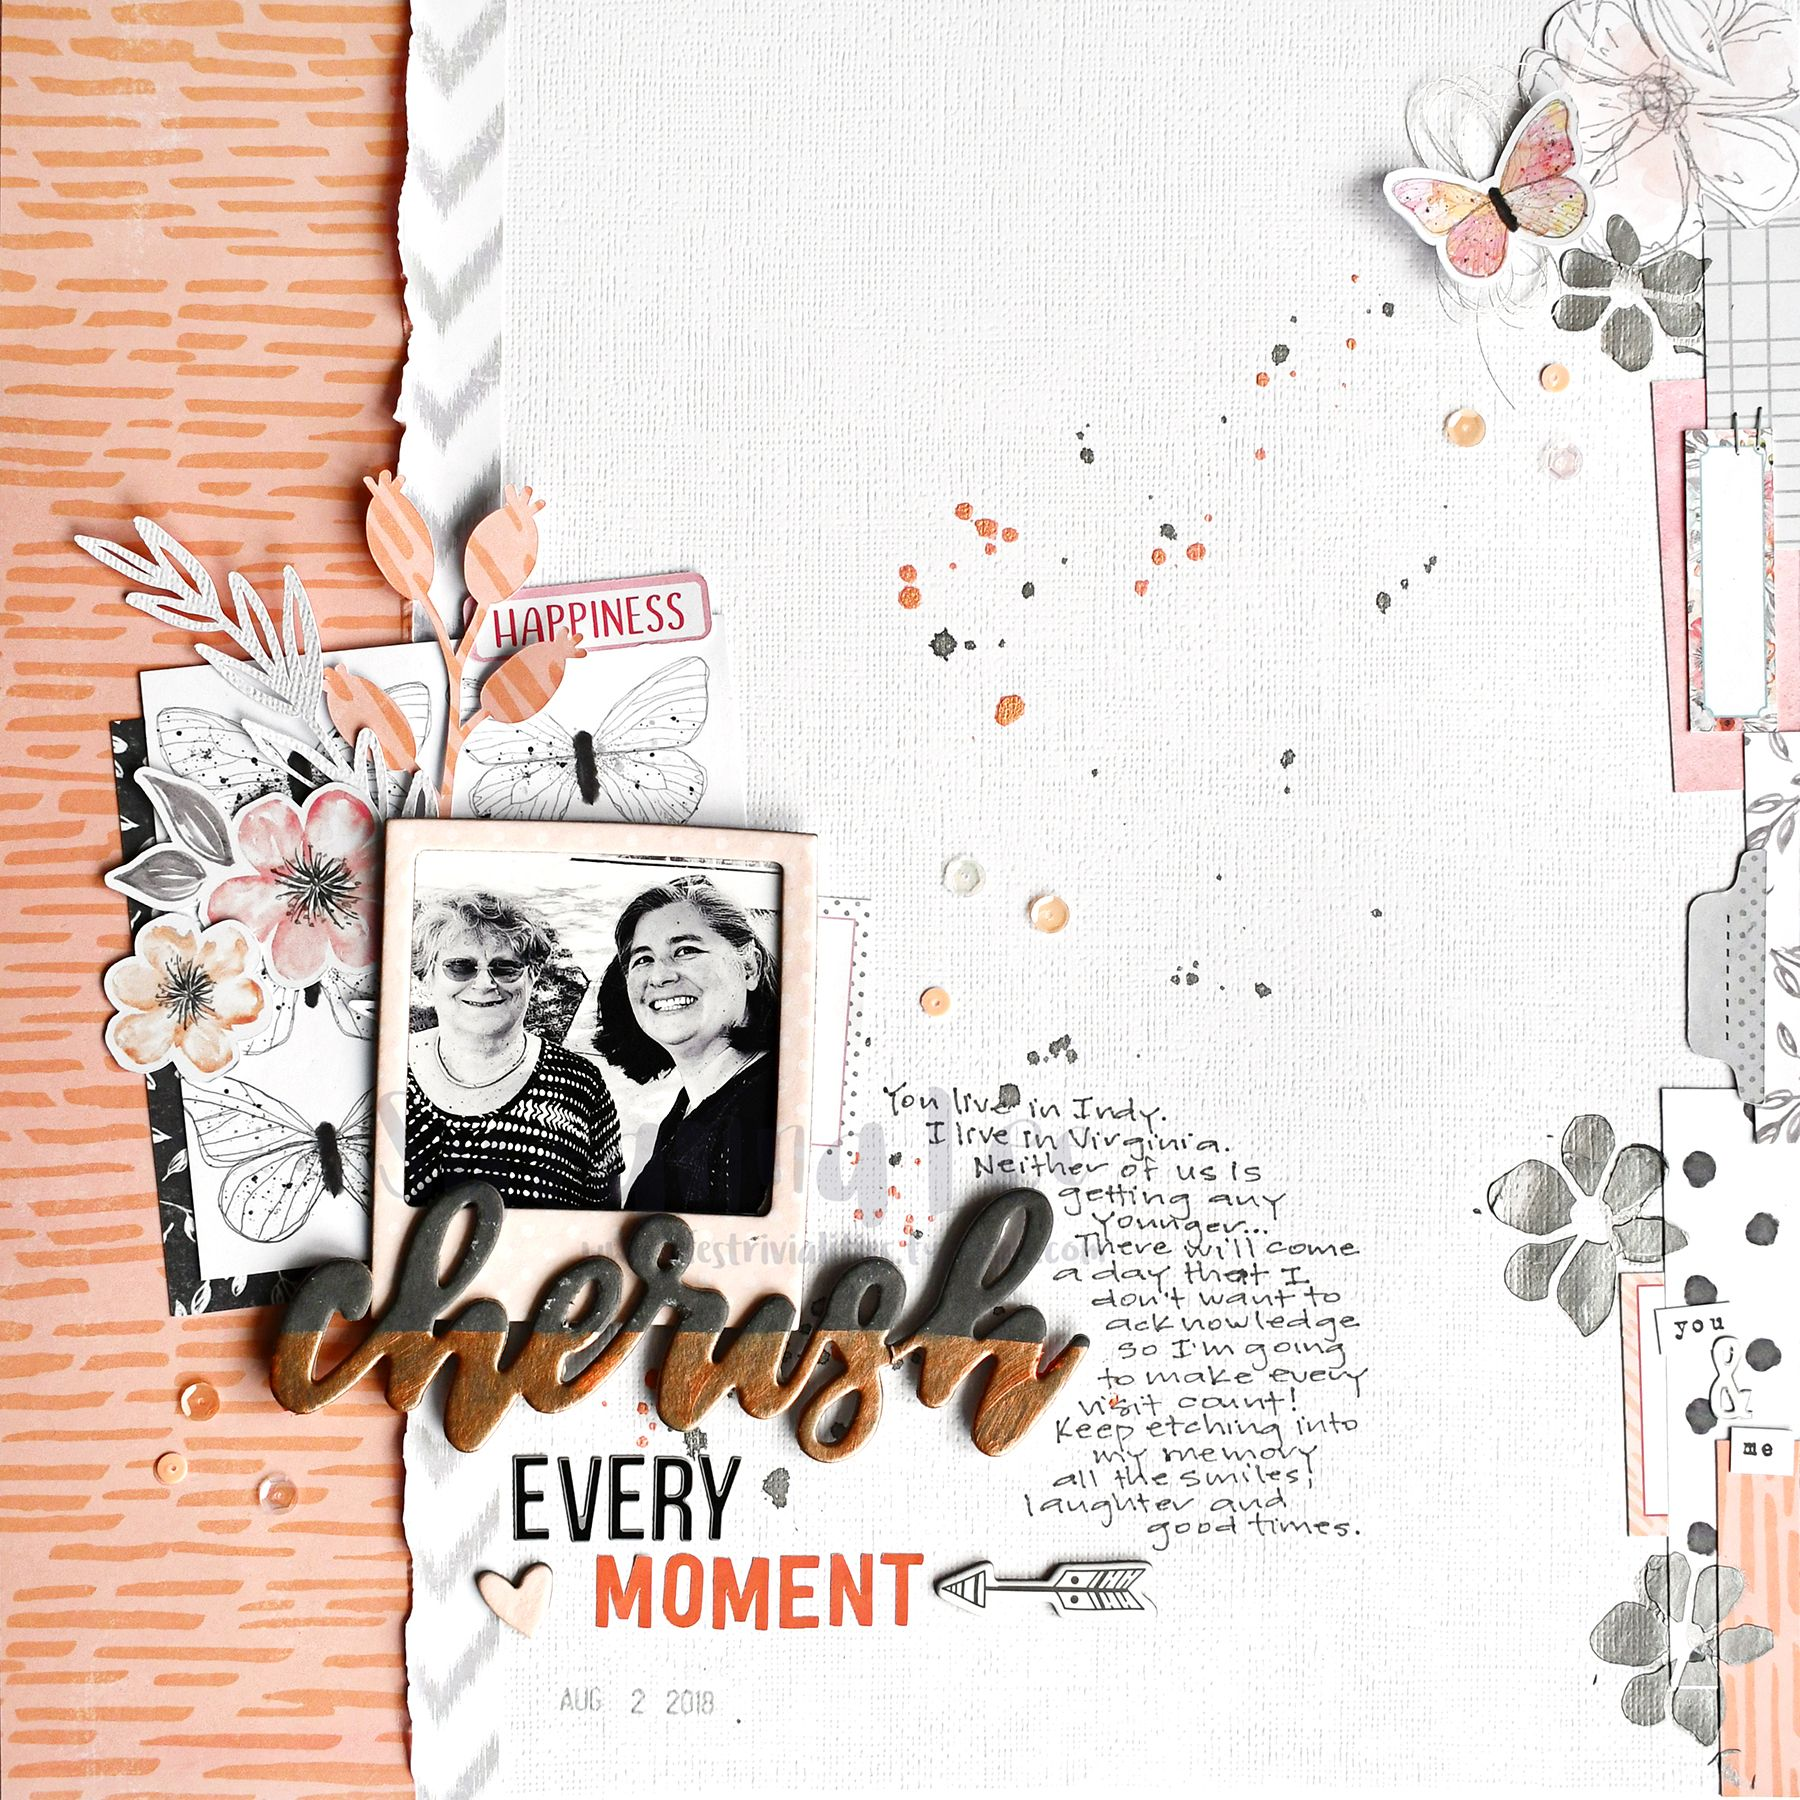 Cherish Every Moment Created Using Salmon, Grey And Silver